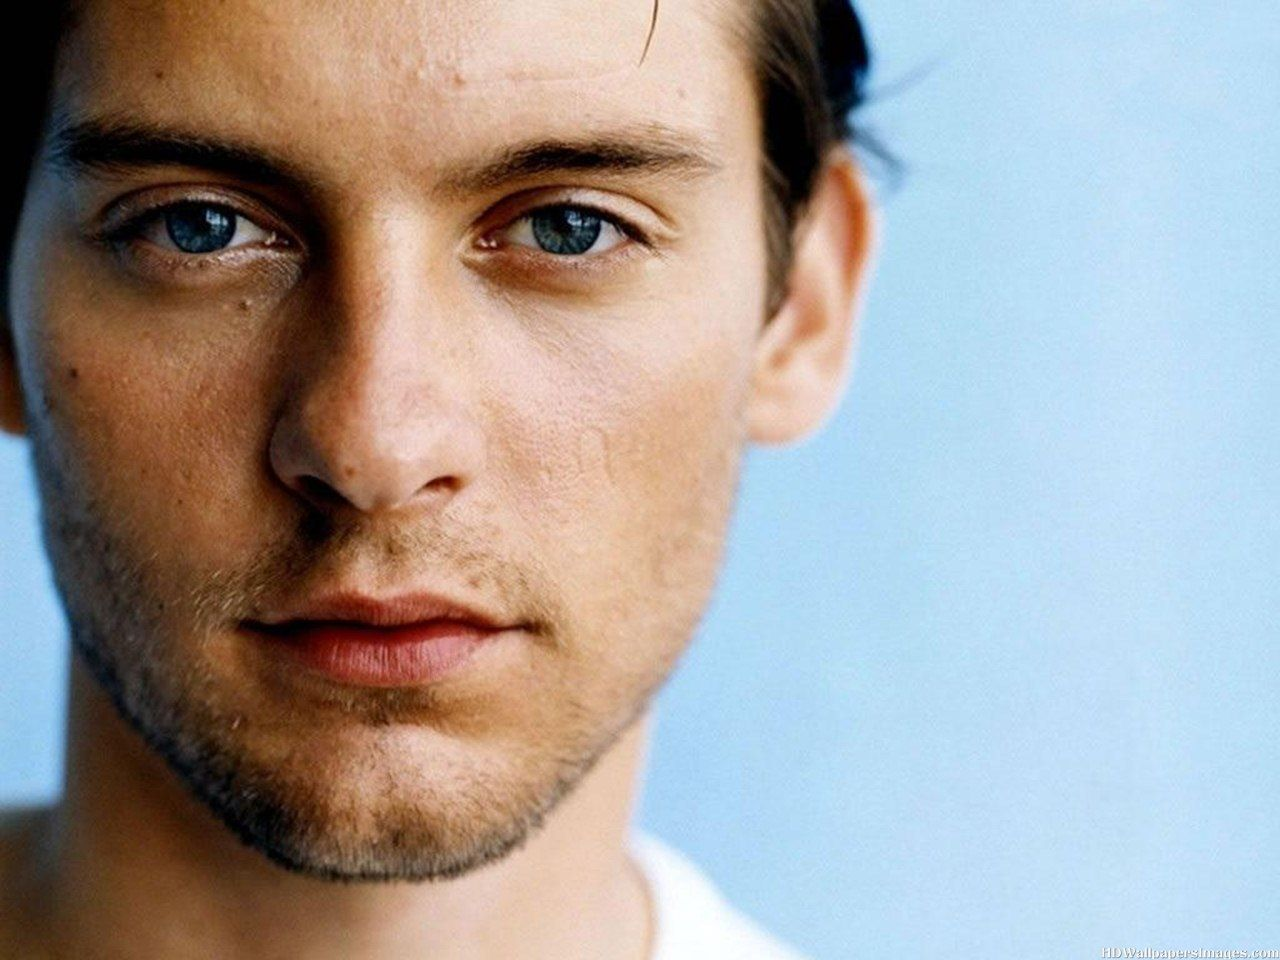 In the wake of Facebook's $1 billion acquisition of Instagram, photo sharing is the hot new space. Tobey Maguire, 36, got in early on Mobli, ...